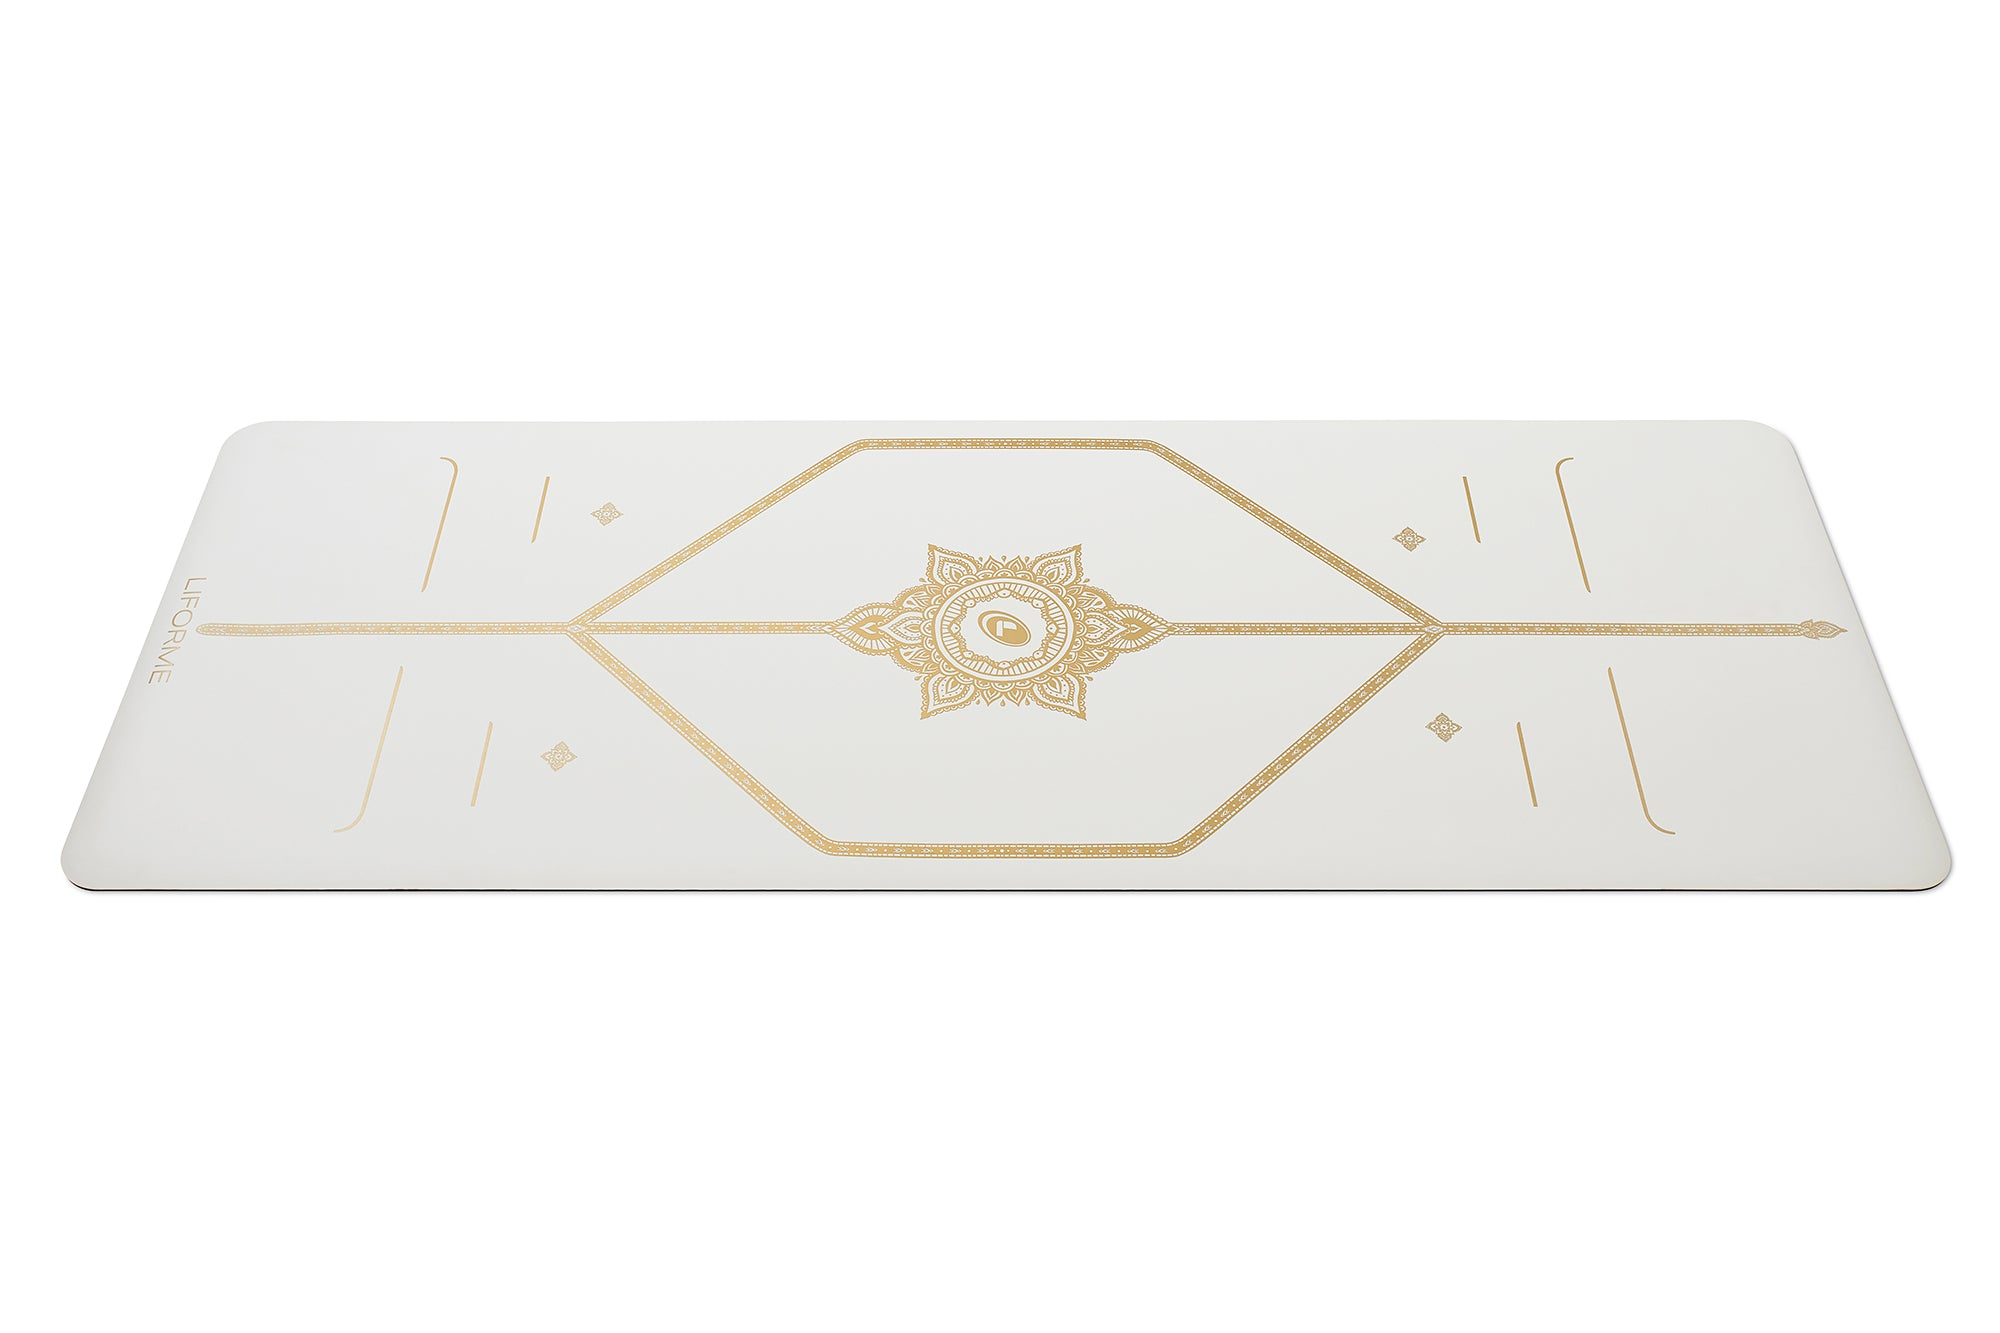 Liforme 'White Magic' Yoga Mat - White/Gold